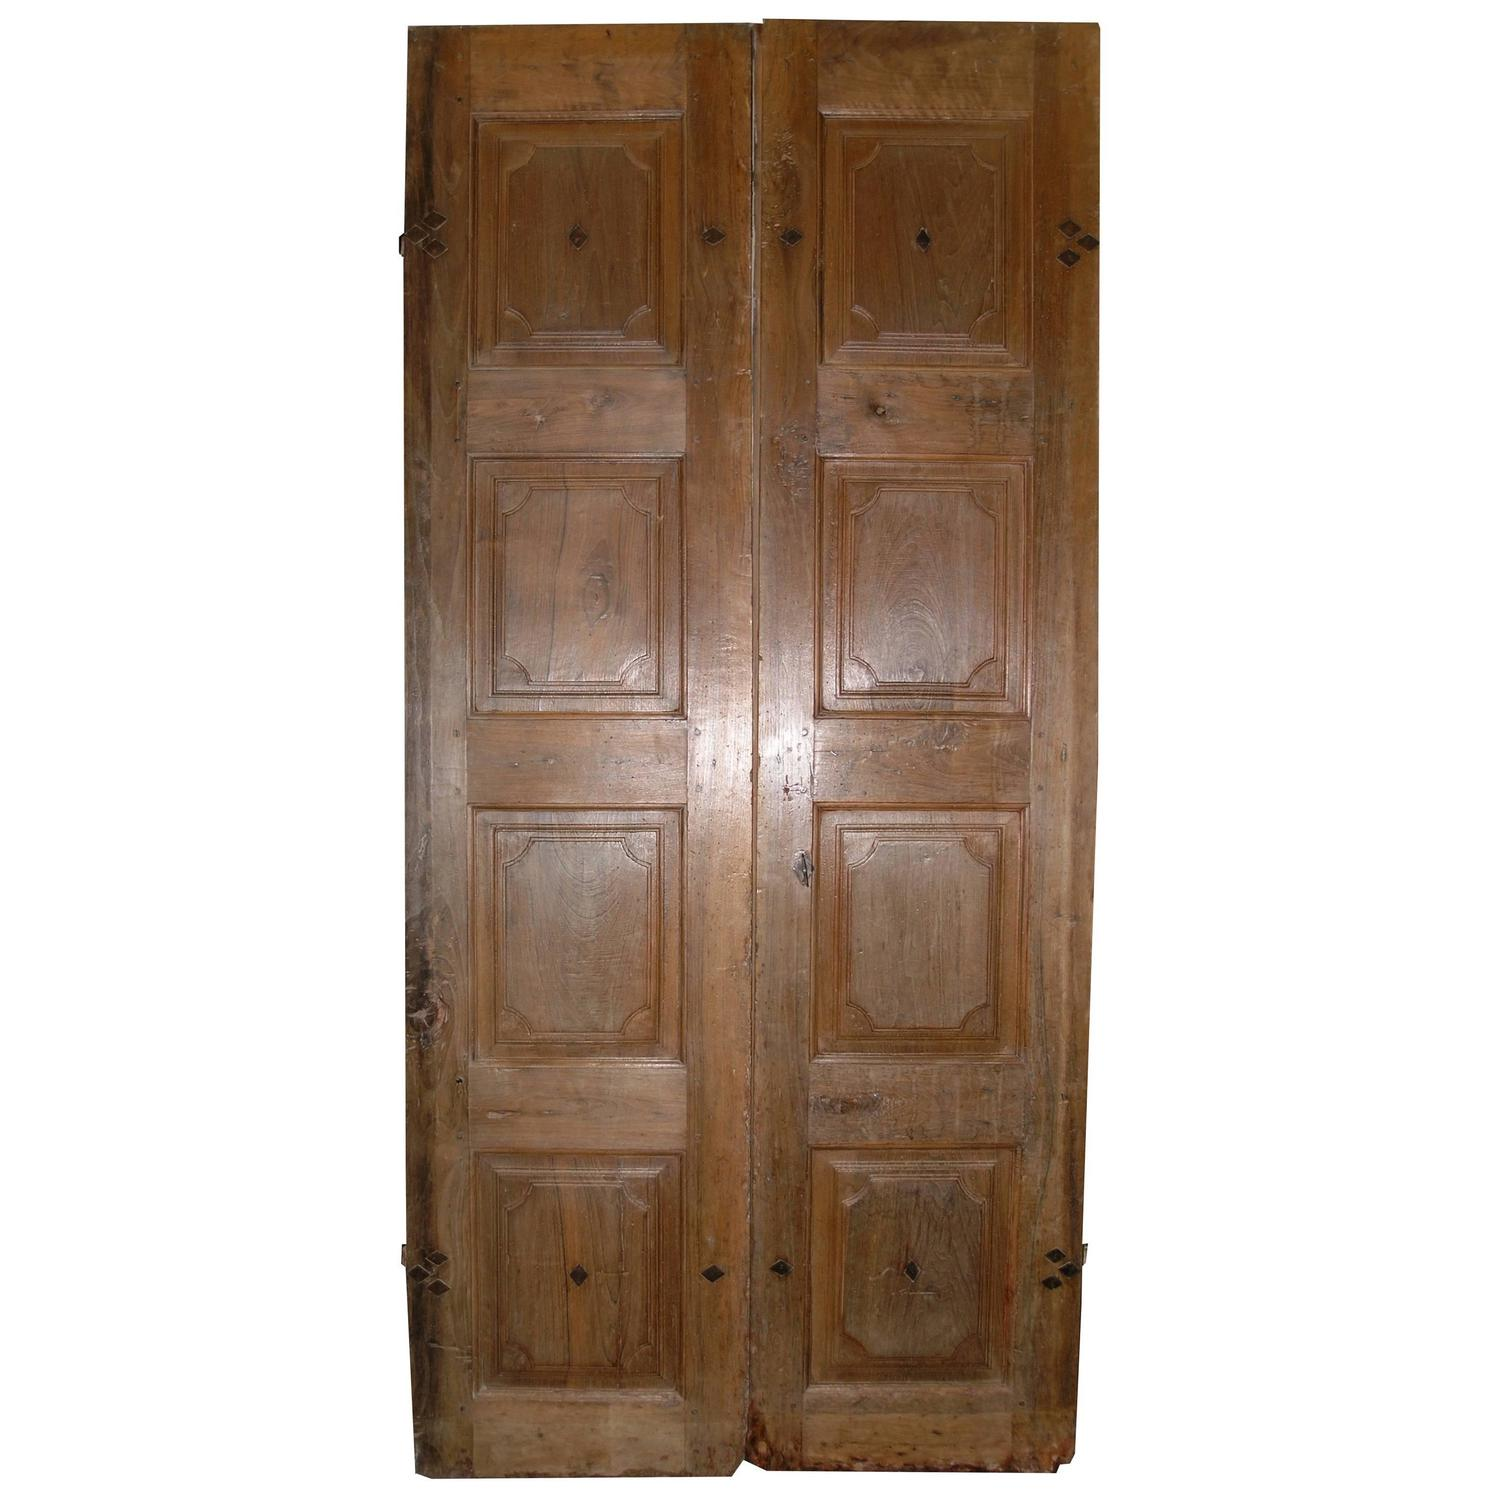 1500 #482E18 Antique Walnut Double Entry Door For Sale At 1stdibs save image Vintage Exterior Doors 41071500